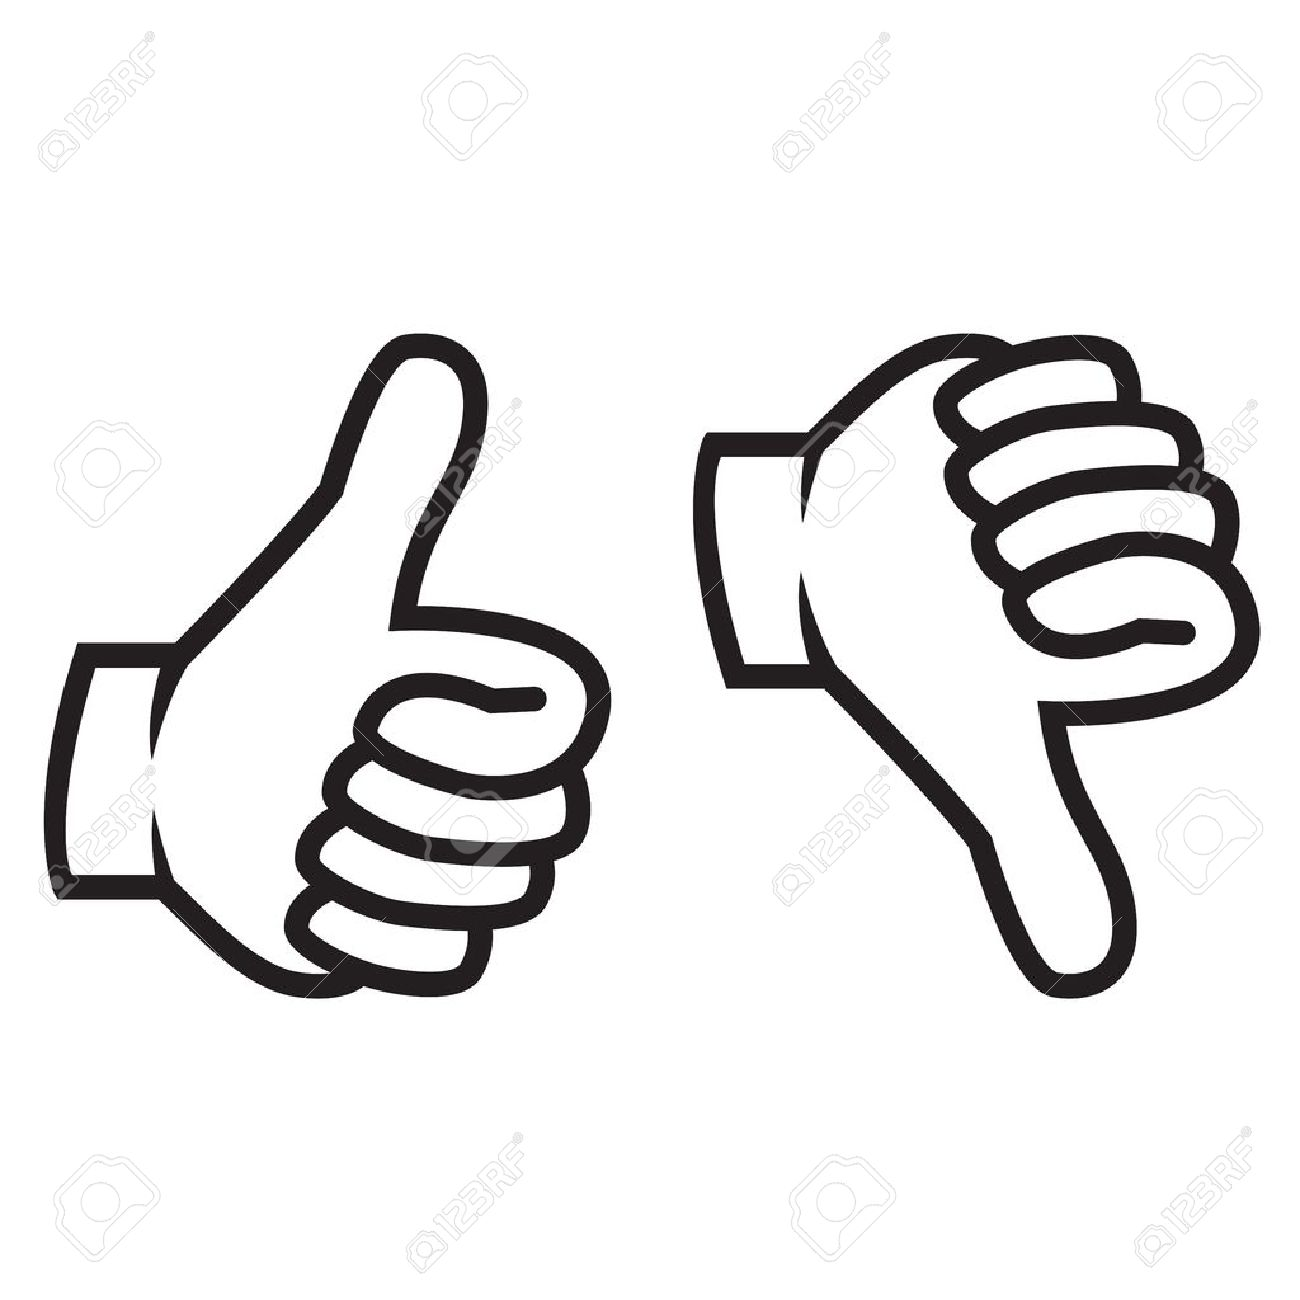 Thumbs up and thumbs down clipart 2 » Clipart Station.